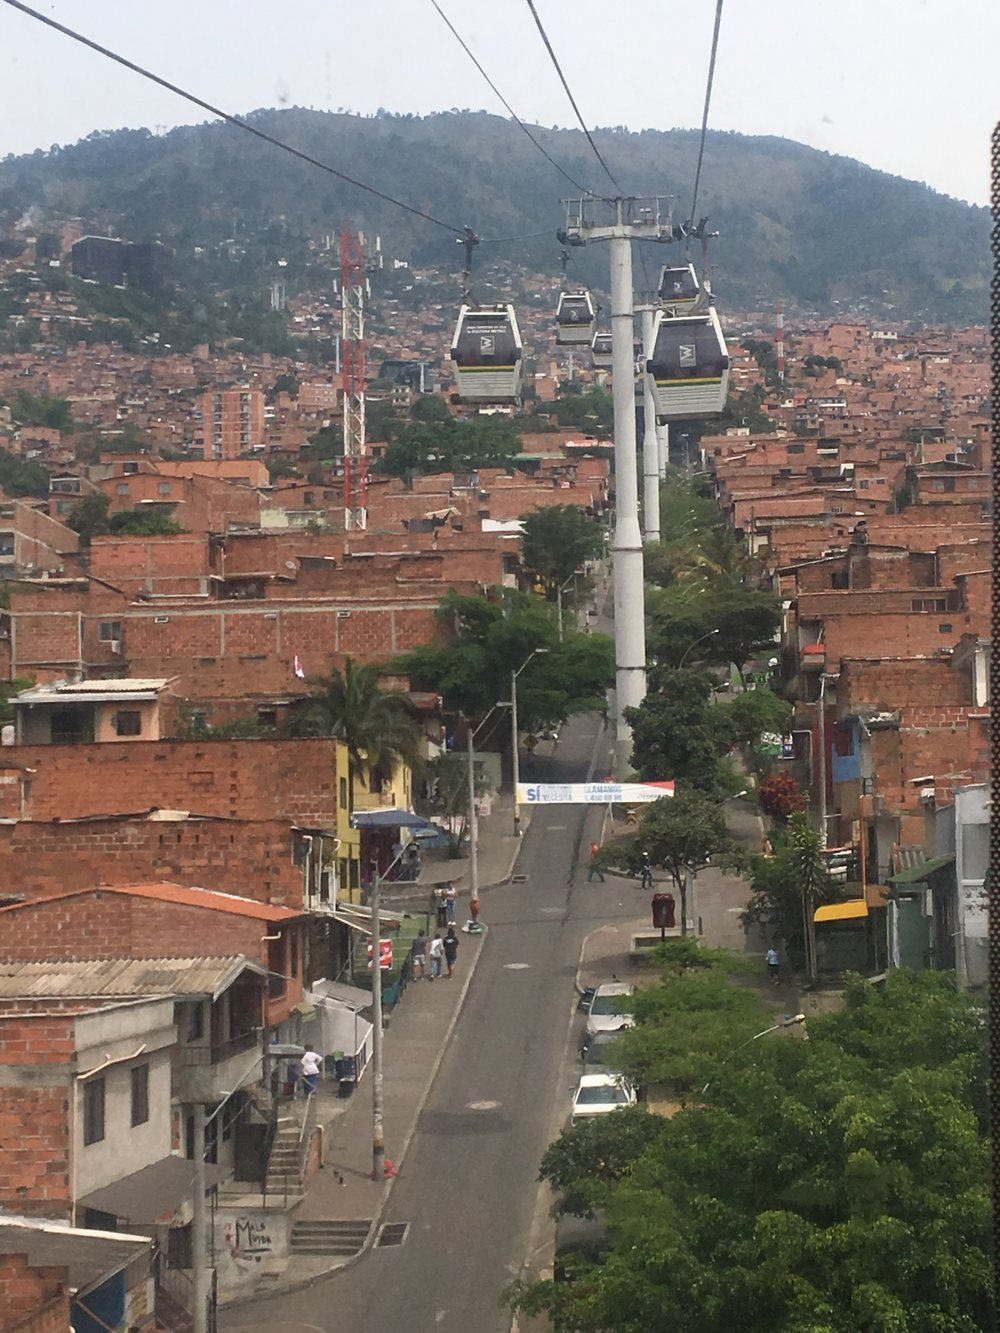 The beginning of the famous cable car ride up to Santo Domingo.